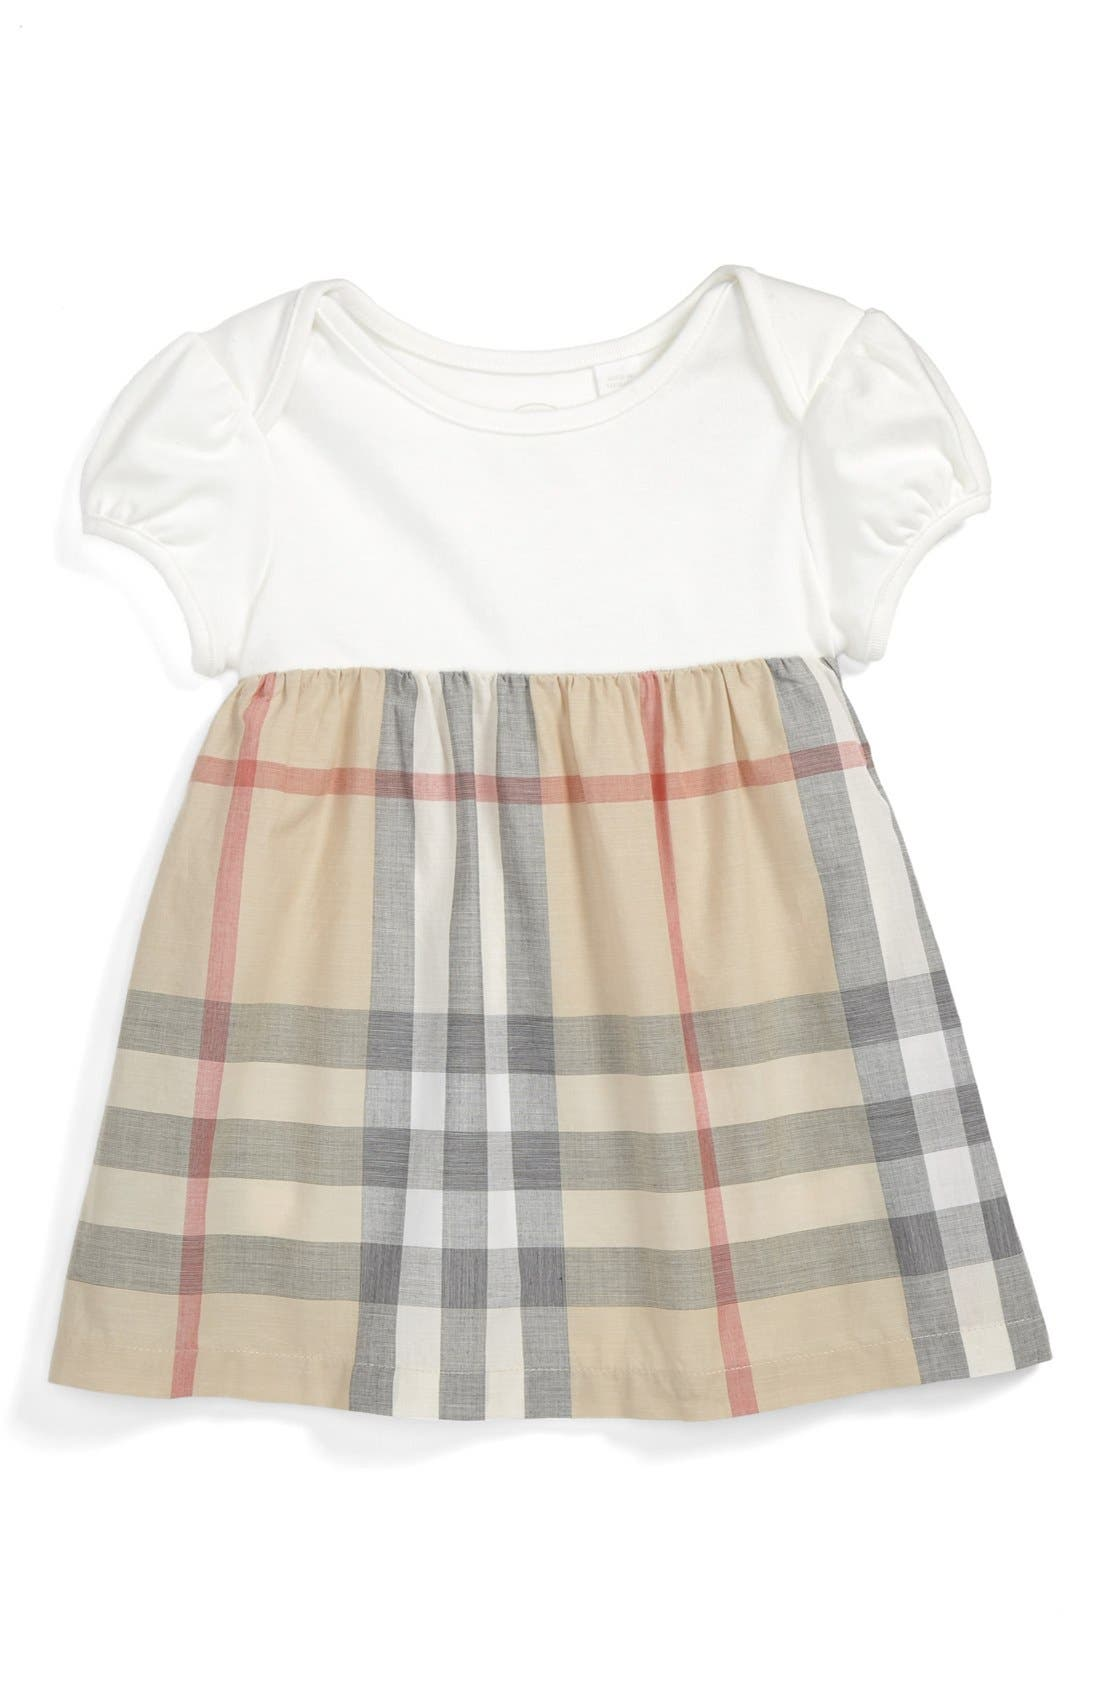 Alternate Image 1 Selected - Burberry 'Cherrylina' Knit & Woven Dress (Baby Girls)